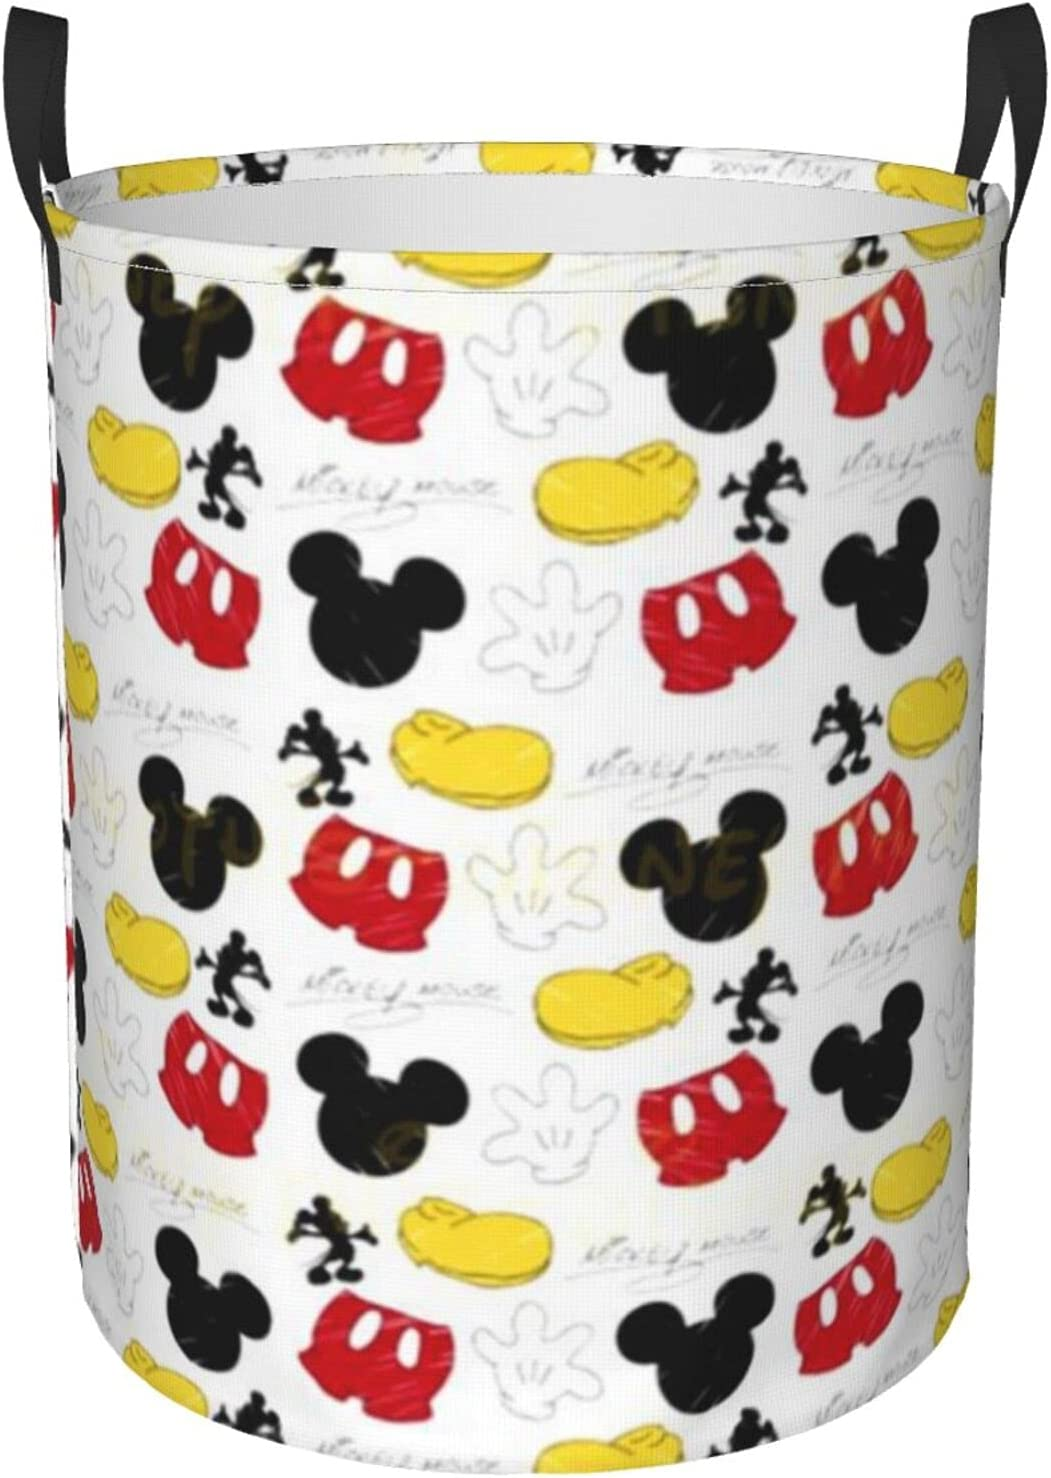 Round Laundry Hamper Dirty Clothes Basket Waterproof Handles Por High Department store quality